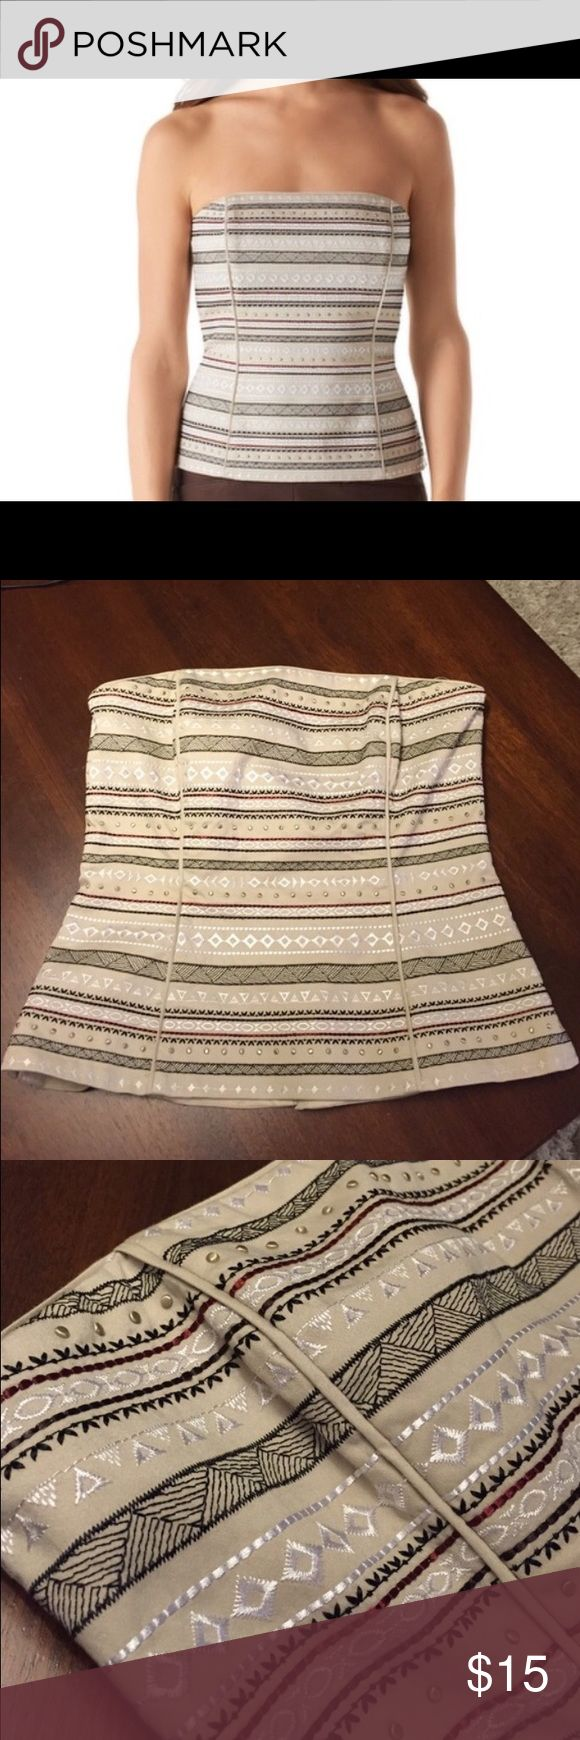 """NWOT WHBM BUSTIER NWOT pyramid studs with white, black and auburn stitching. 98% cotton, 2% spandex. Hits at the upper hip 22"""" from shoulder. Cotton lining. Boning and inner silicone elastic band to secure. White House Black Market Tops"""